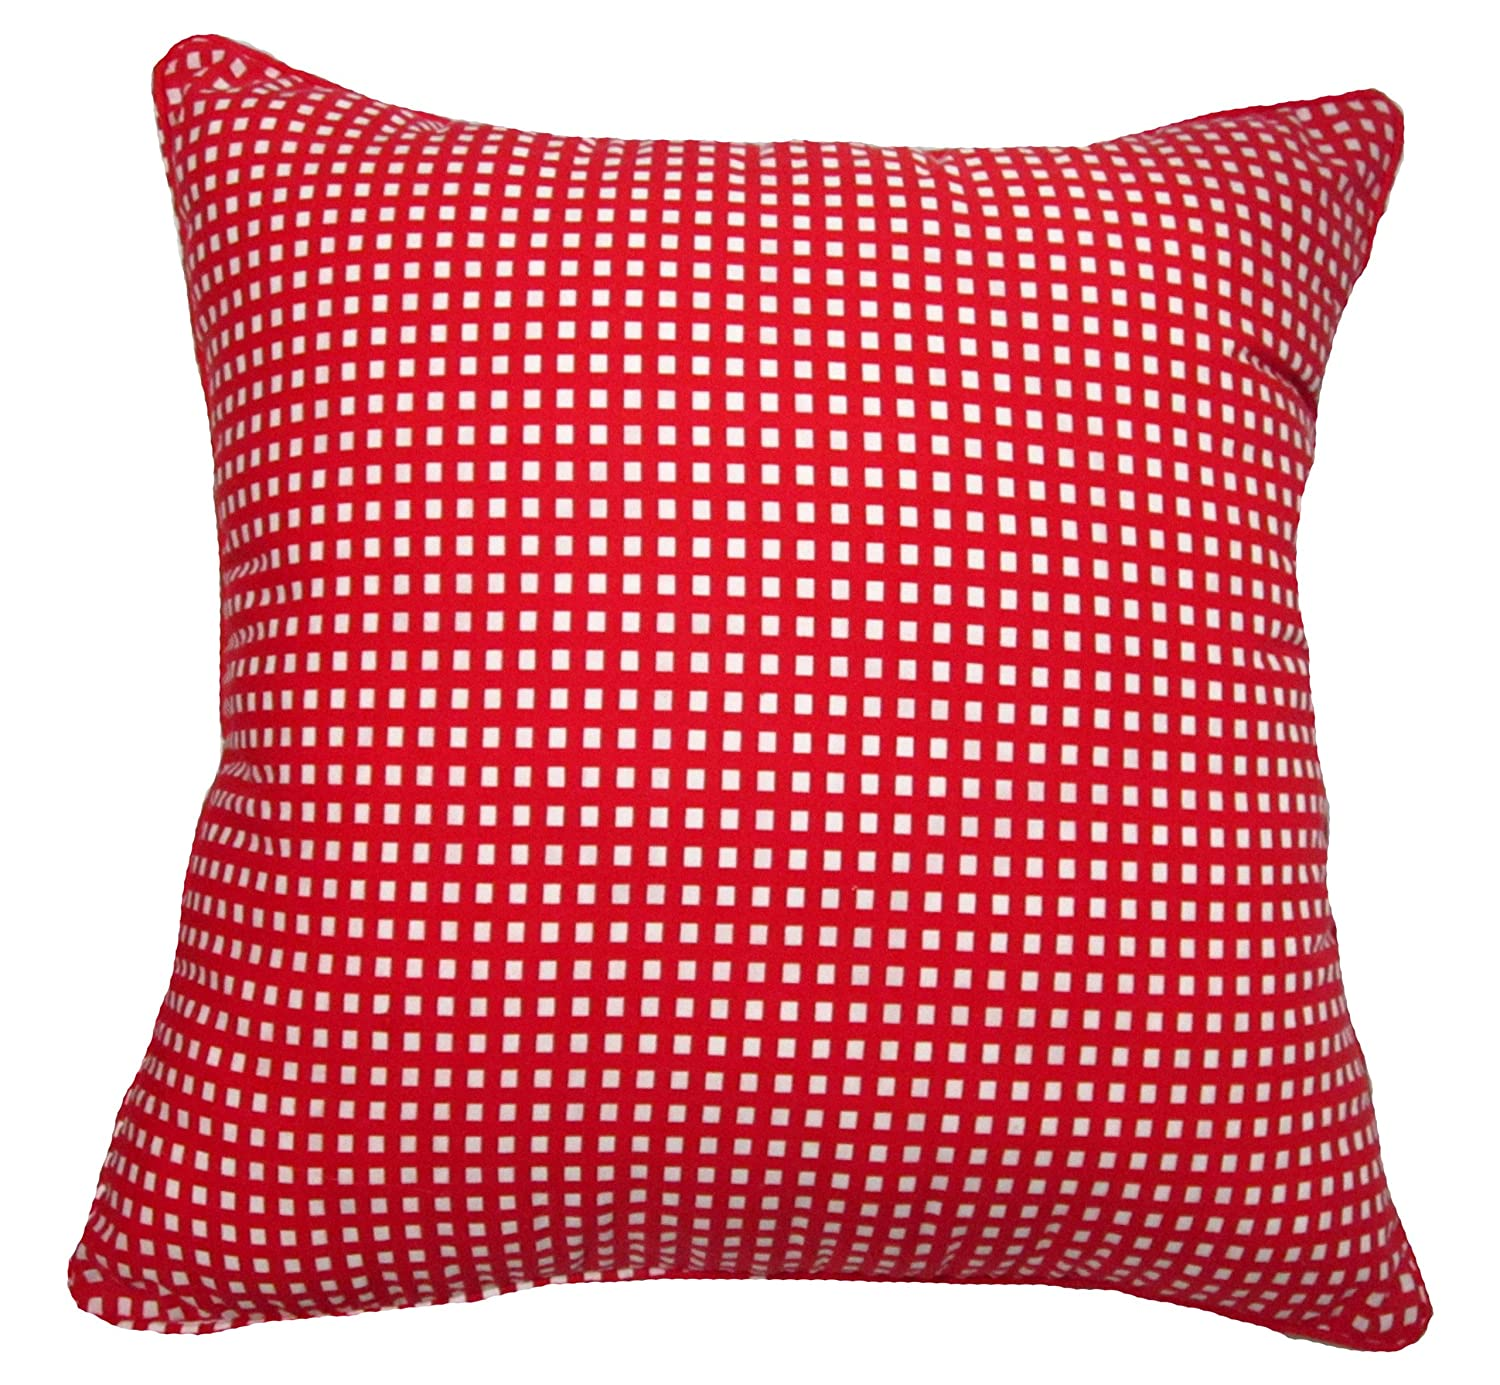 amazoncom x red gingham cotton decorative throw pillow cover  - amazoncom x red gingham cotton decorative throw pillow cover home kitchen